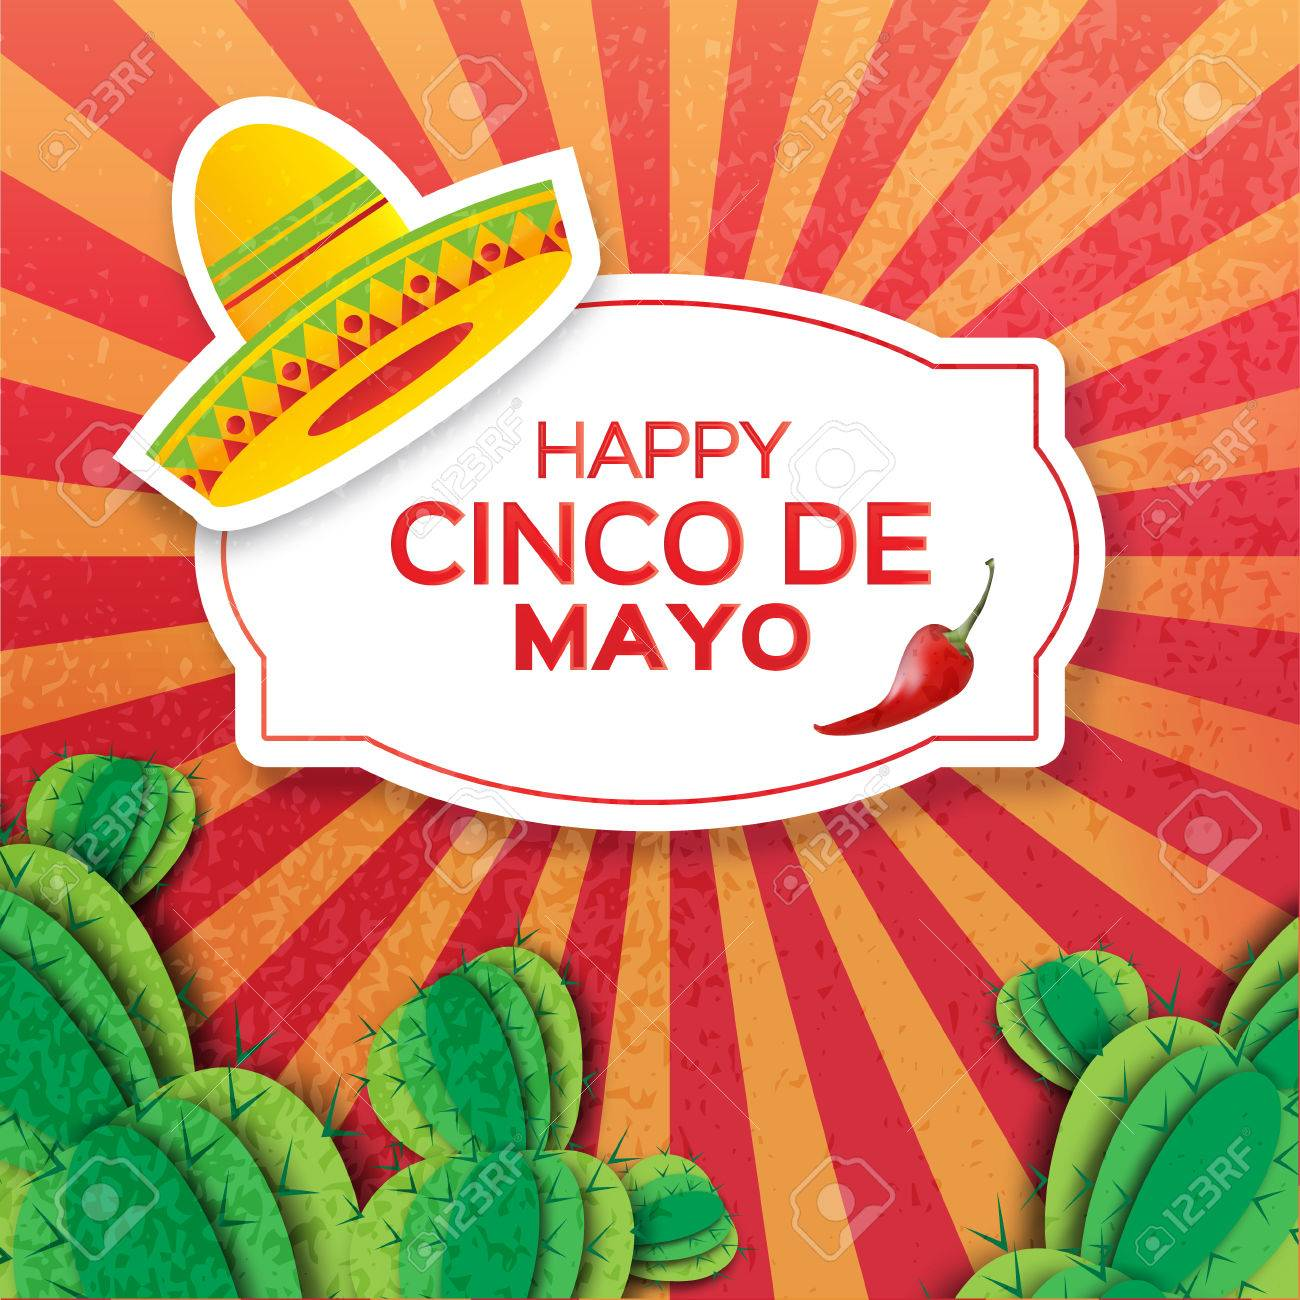 Mexican sombrero hat, succulents and red chili pepper jalapeno. Mexico, Carnival. Orange background with cactus. Vector illustration. - 55944099